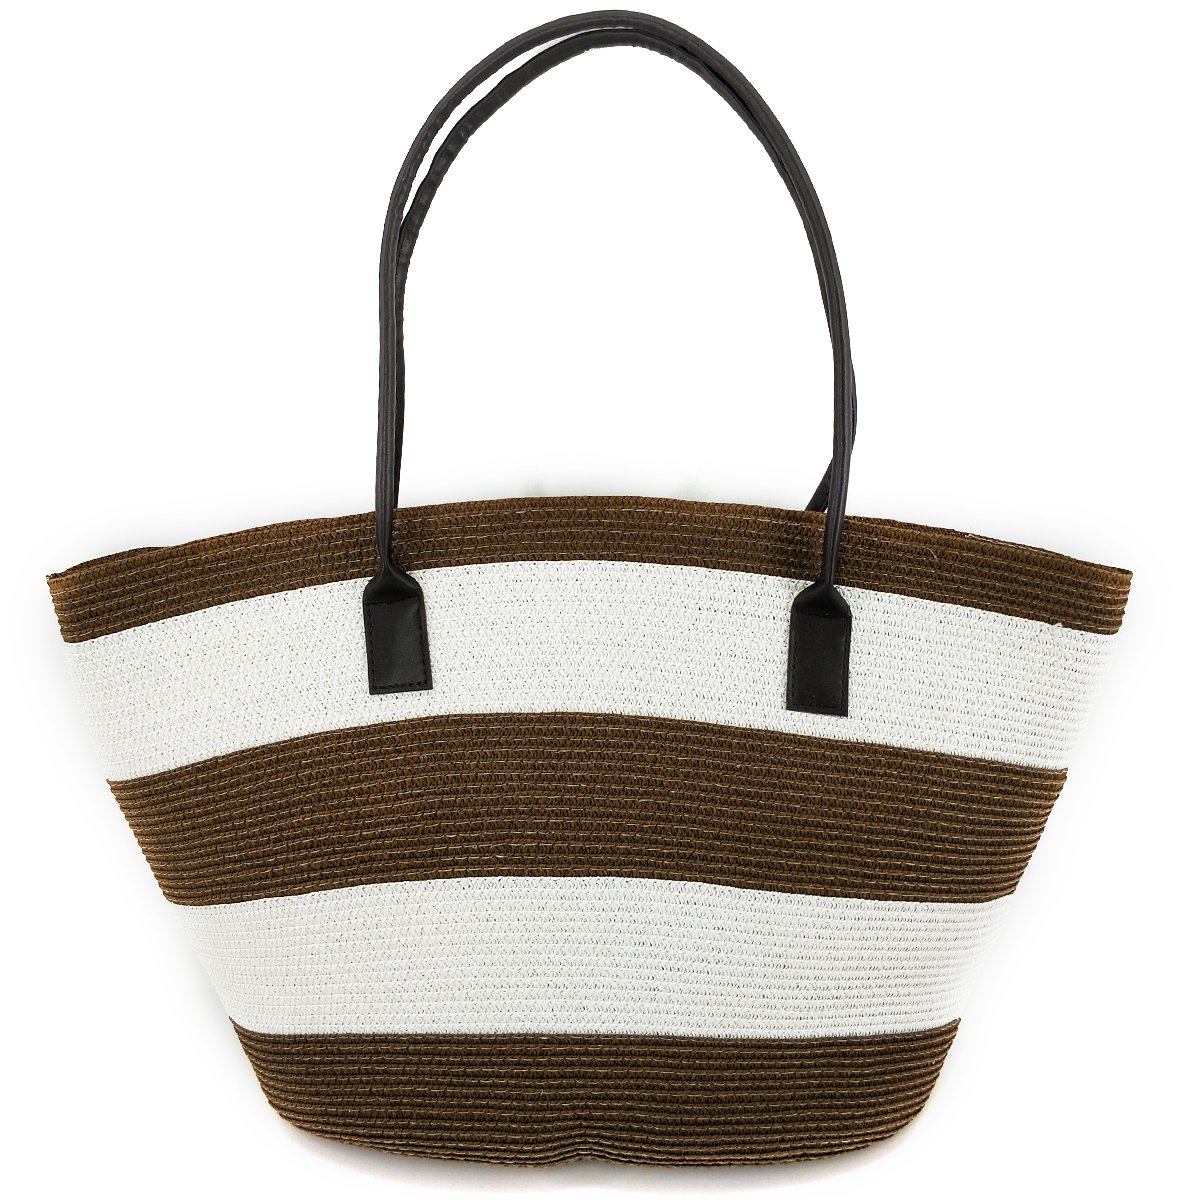 Women Handmade Straw Beach Bag, Straw Tote, Straw Handbag with Leather Handle for Summer (Style 03)